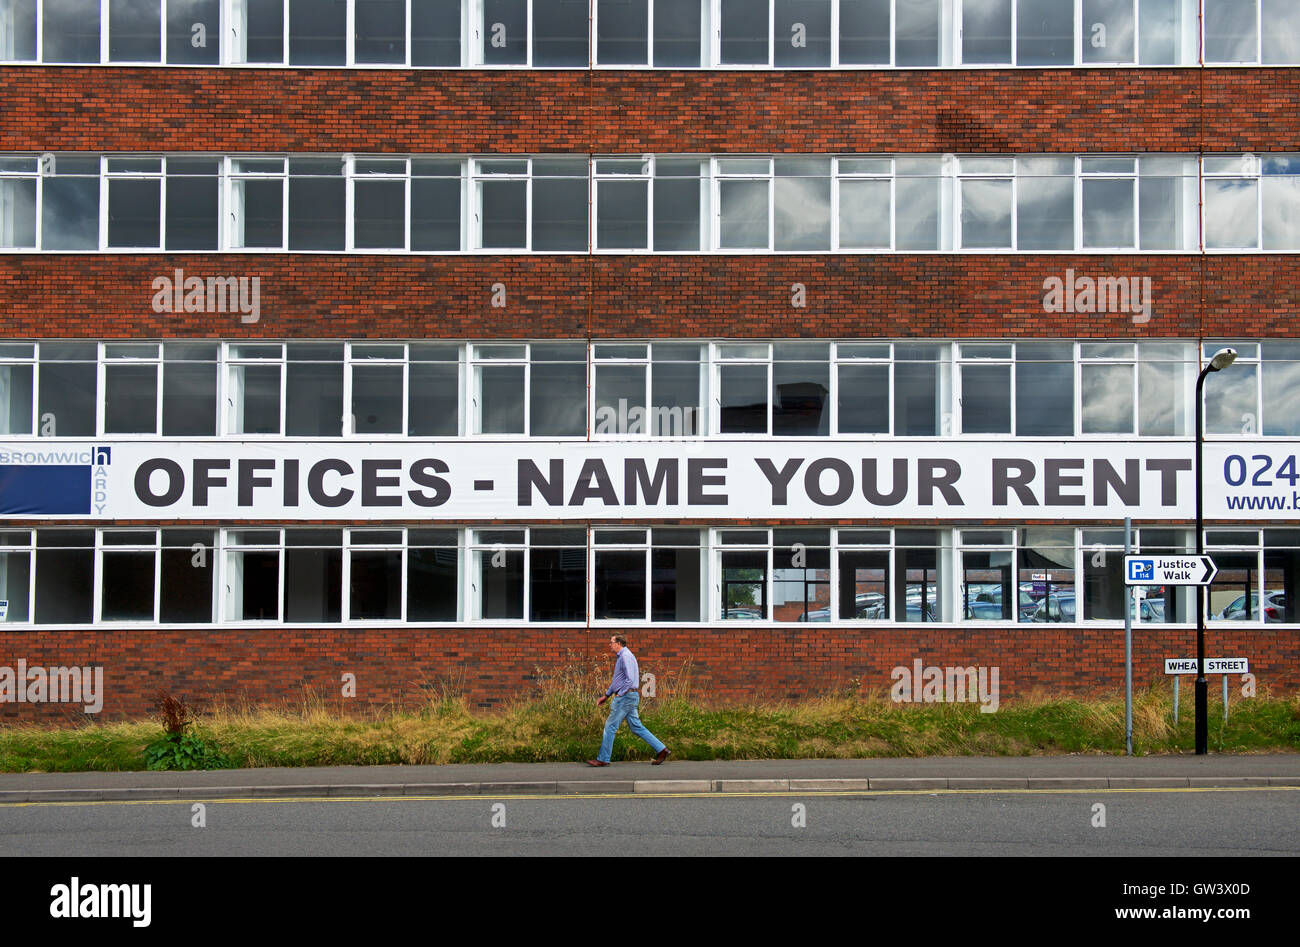 Man walking past office block with banner: Offices, Name Your Rent - Stock Image